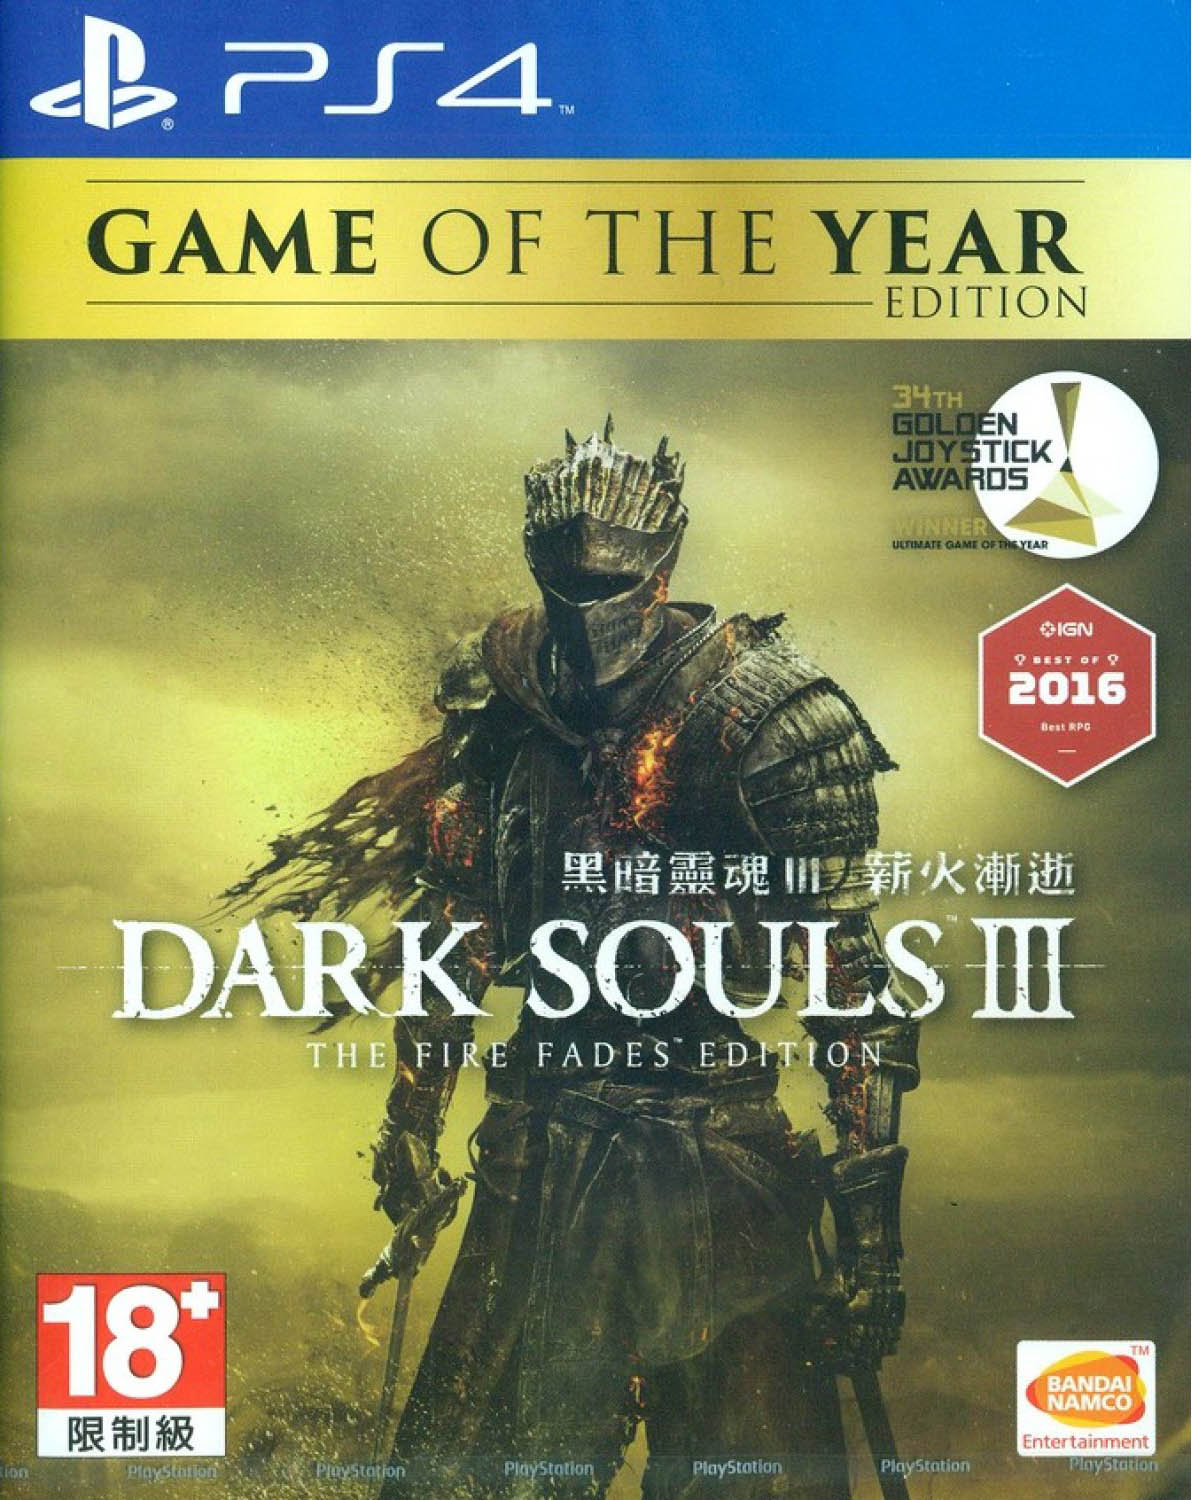 Dark Souls III: The Fire Fades Edition (Game of the Year Edition) Издание в Азии